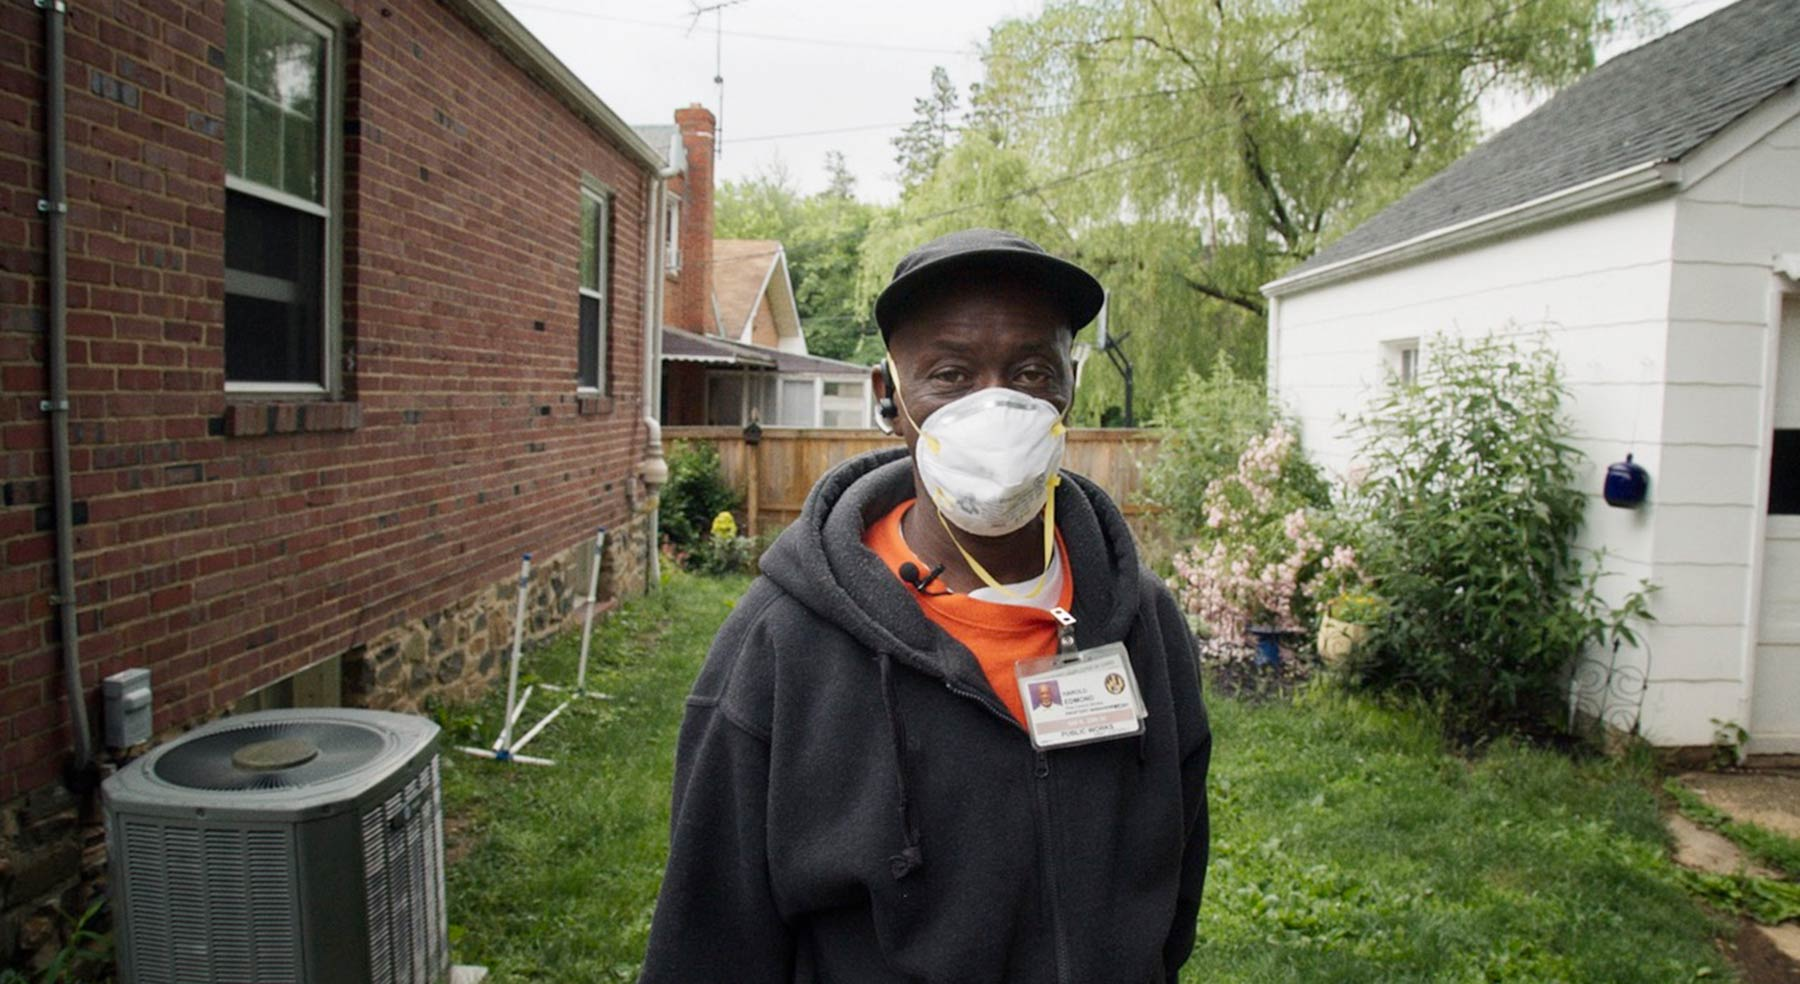 A man wearing a dust mask